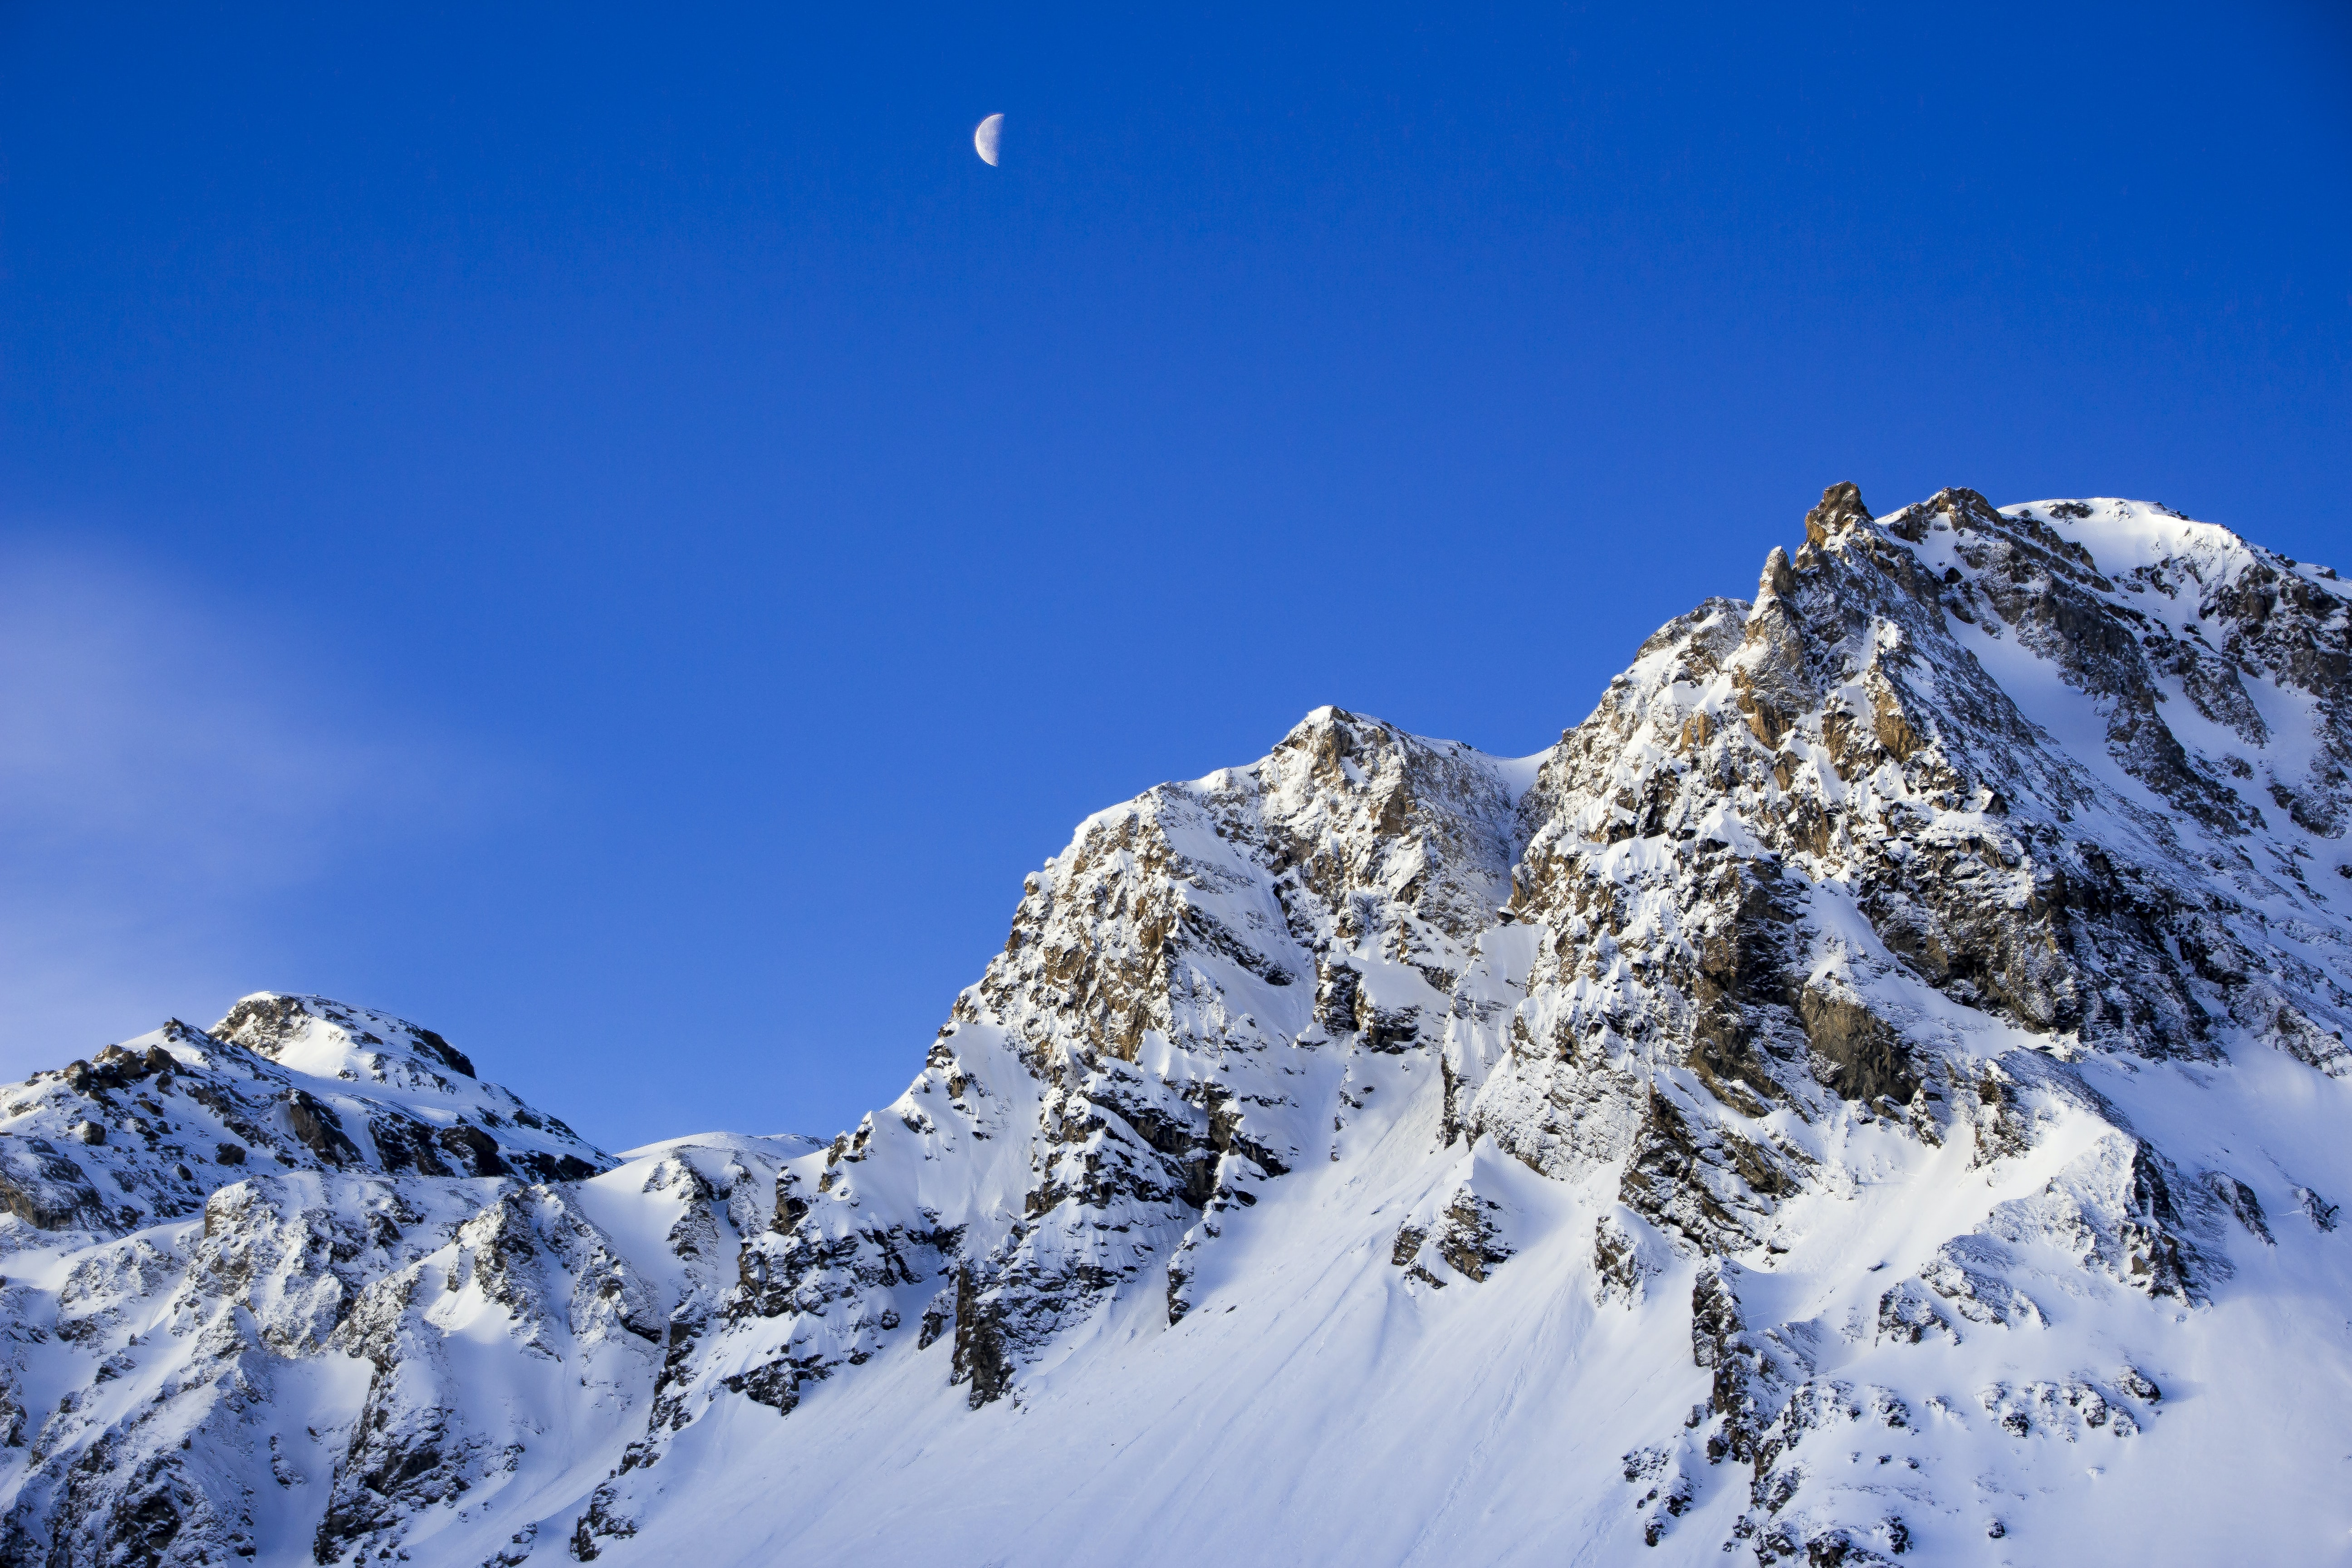 Half moon rises over the snow covered mountains in France